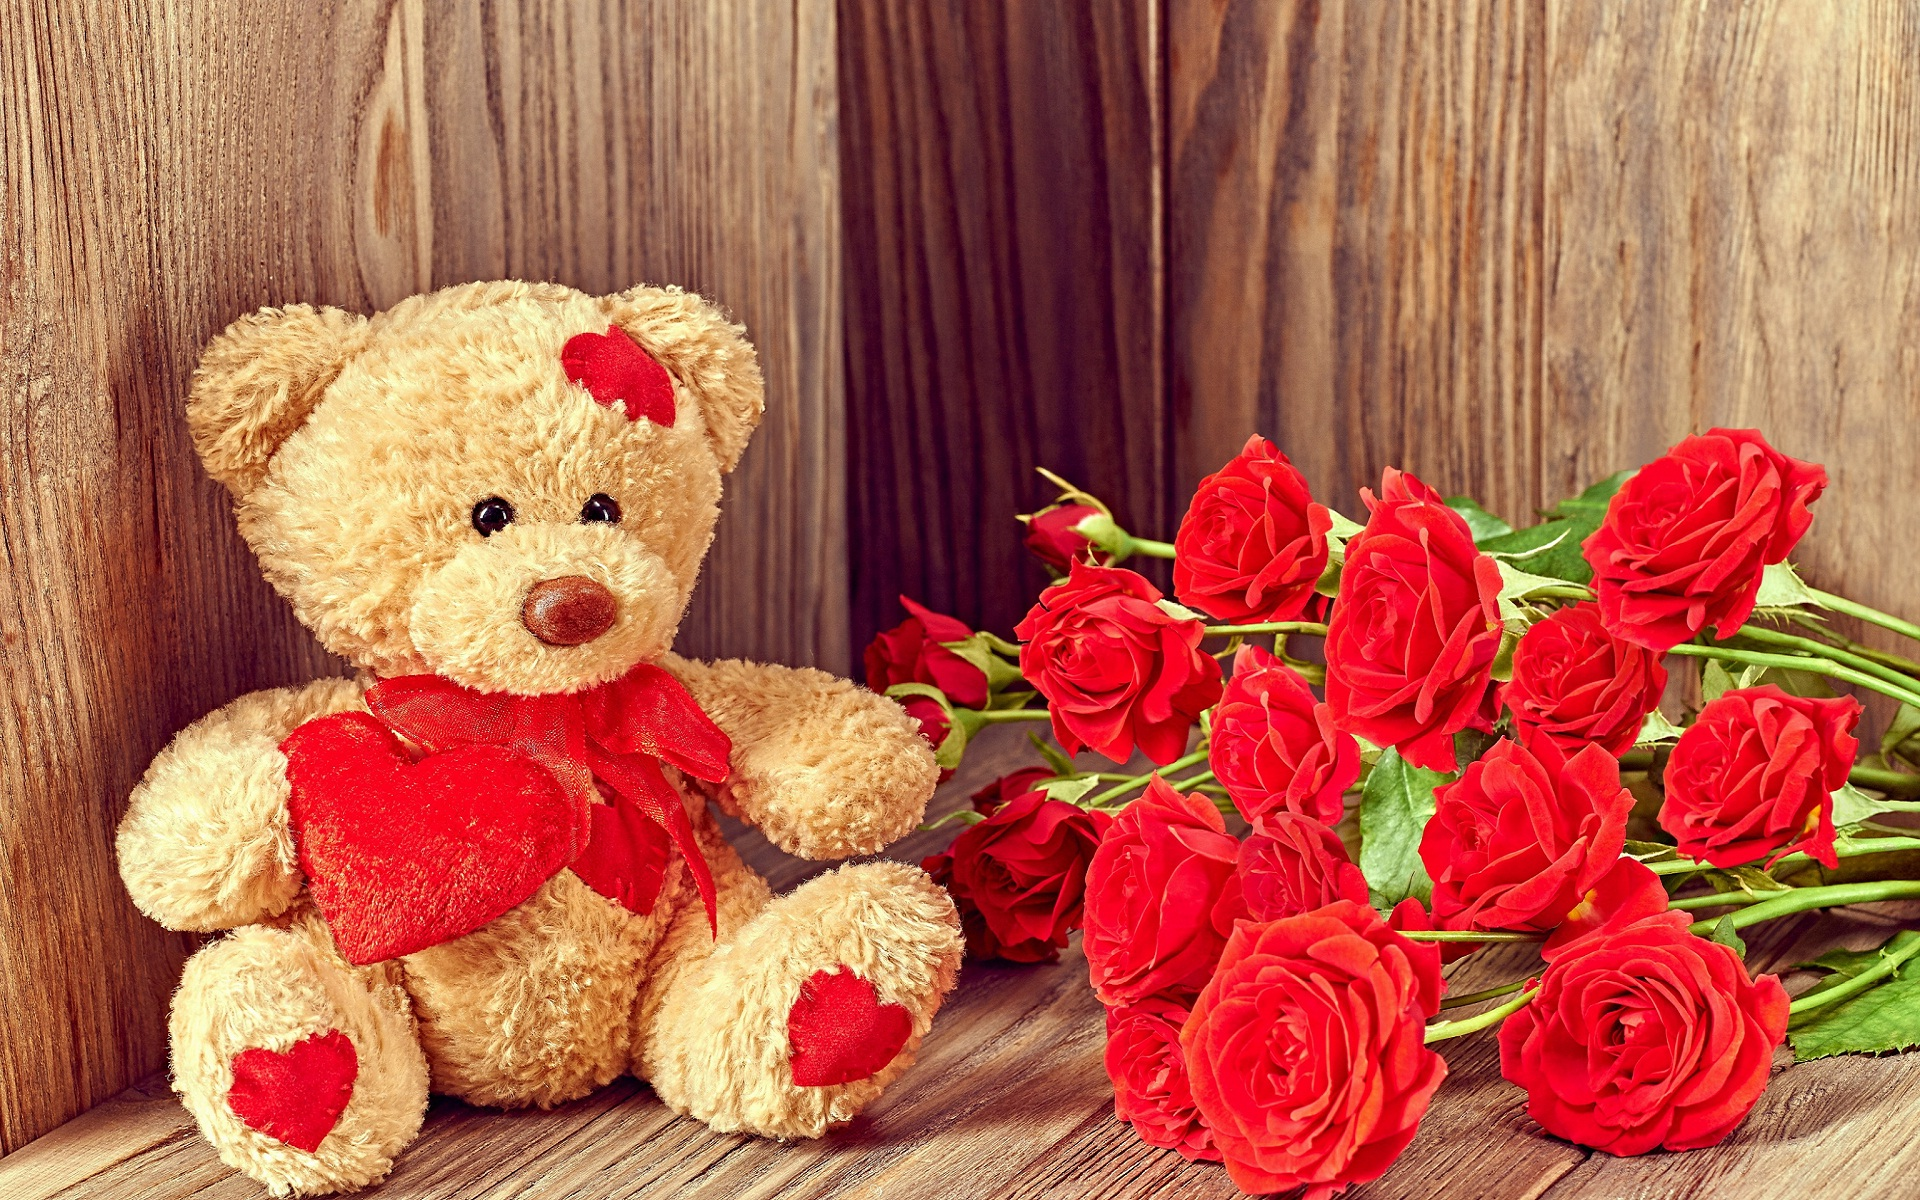 I Love You Red Rose Flowers And Teddy Full Hd Wallpapers - Teddy Bear Wallpaper Hd For Desktop - HD Wallpaper